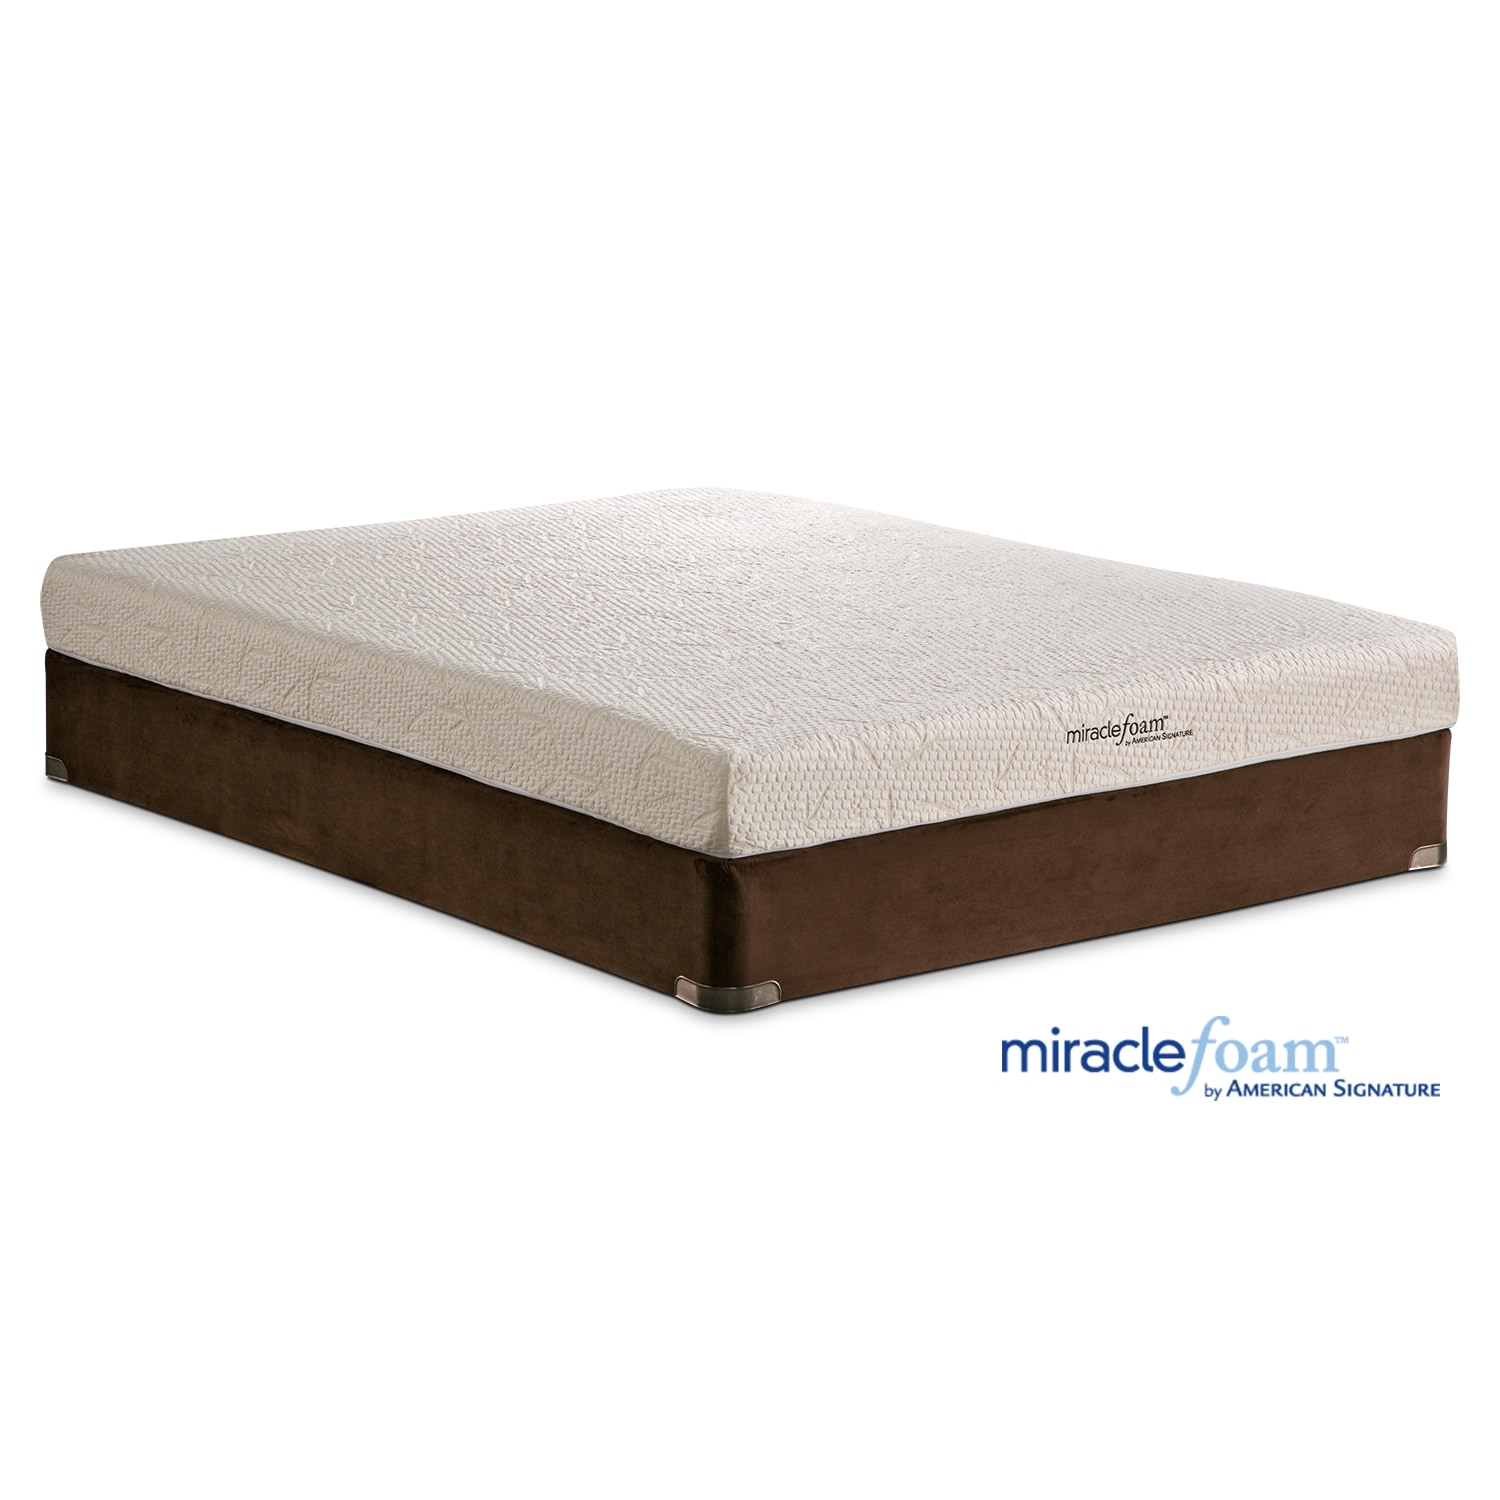 Mattresses and Bedding - Miracle Foam Renew II Queen Mattress & Foundation Set